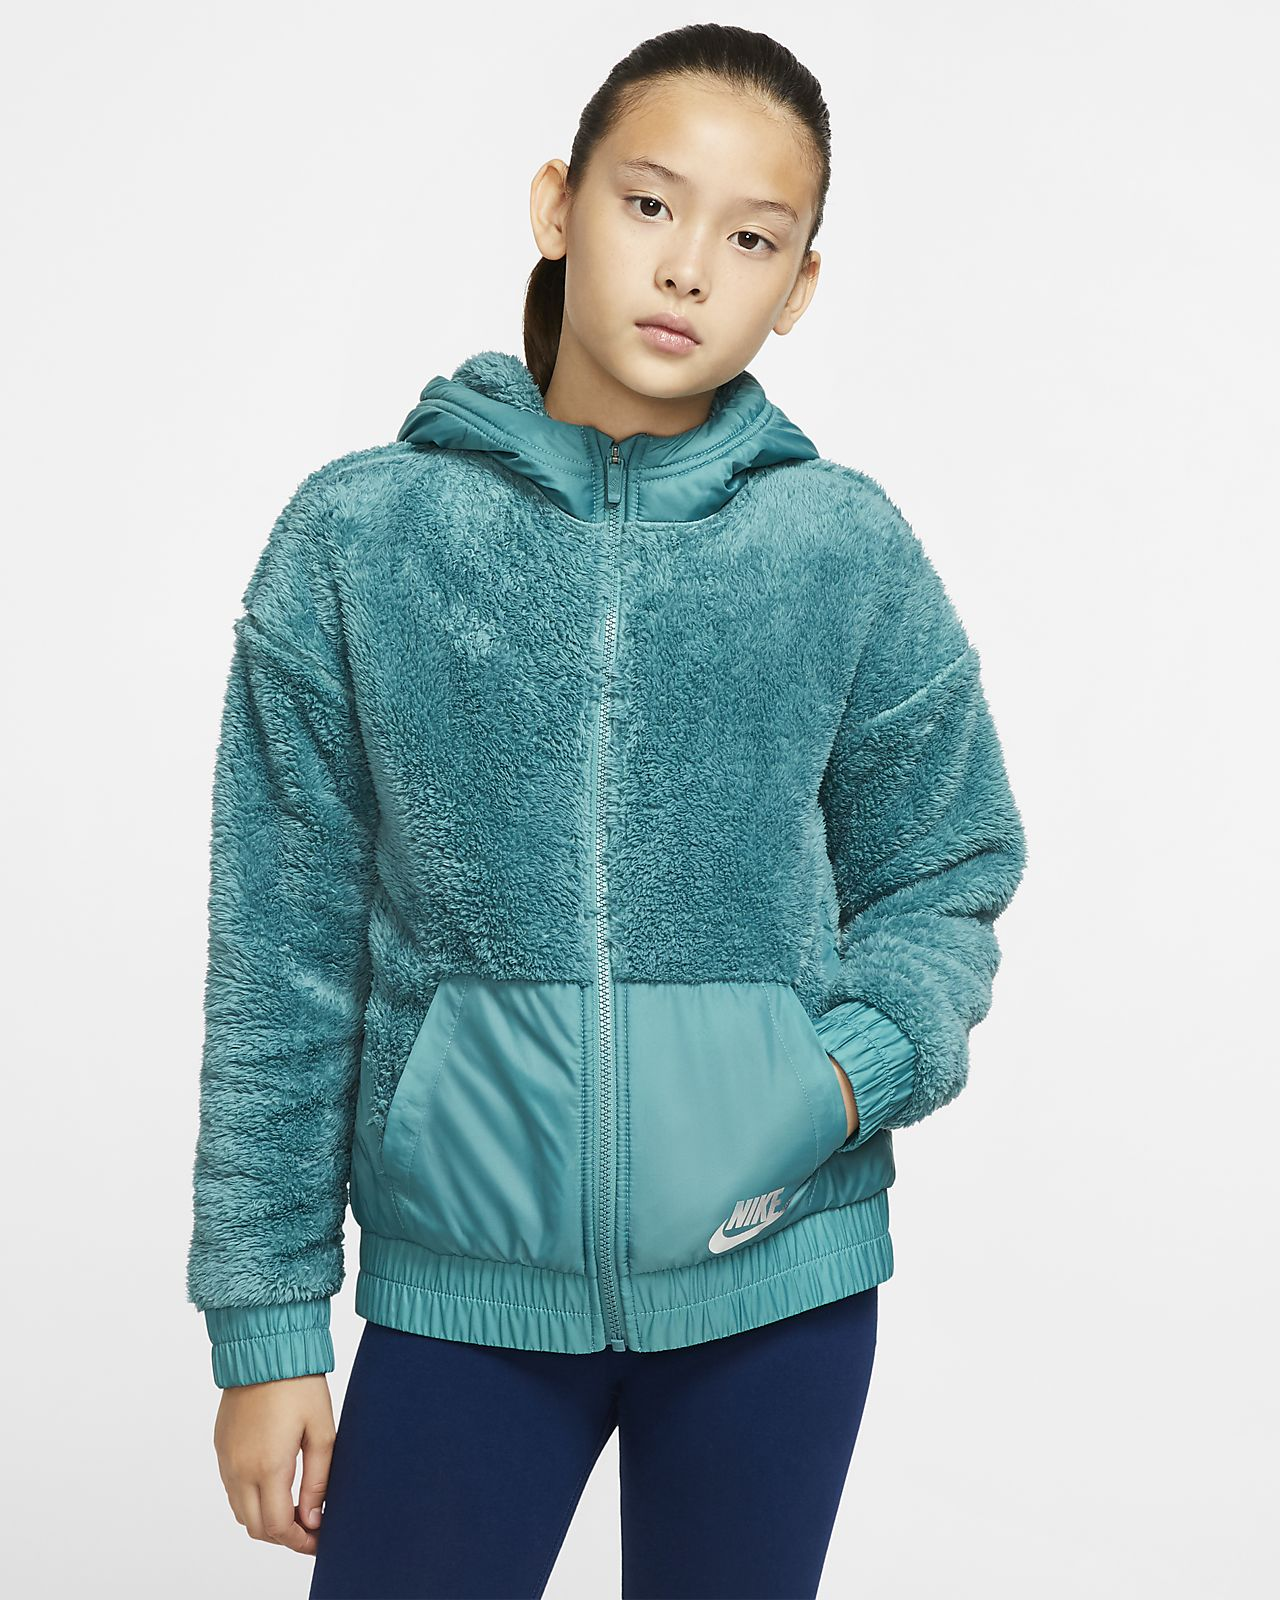 Nike Sportswear Big Kids' (Girls') Sherpa Jacket